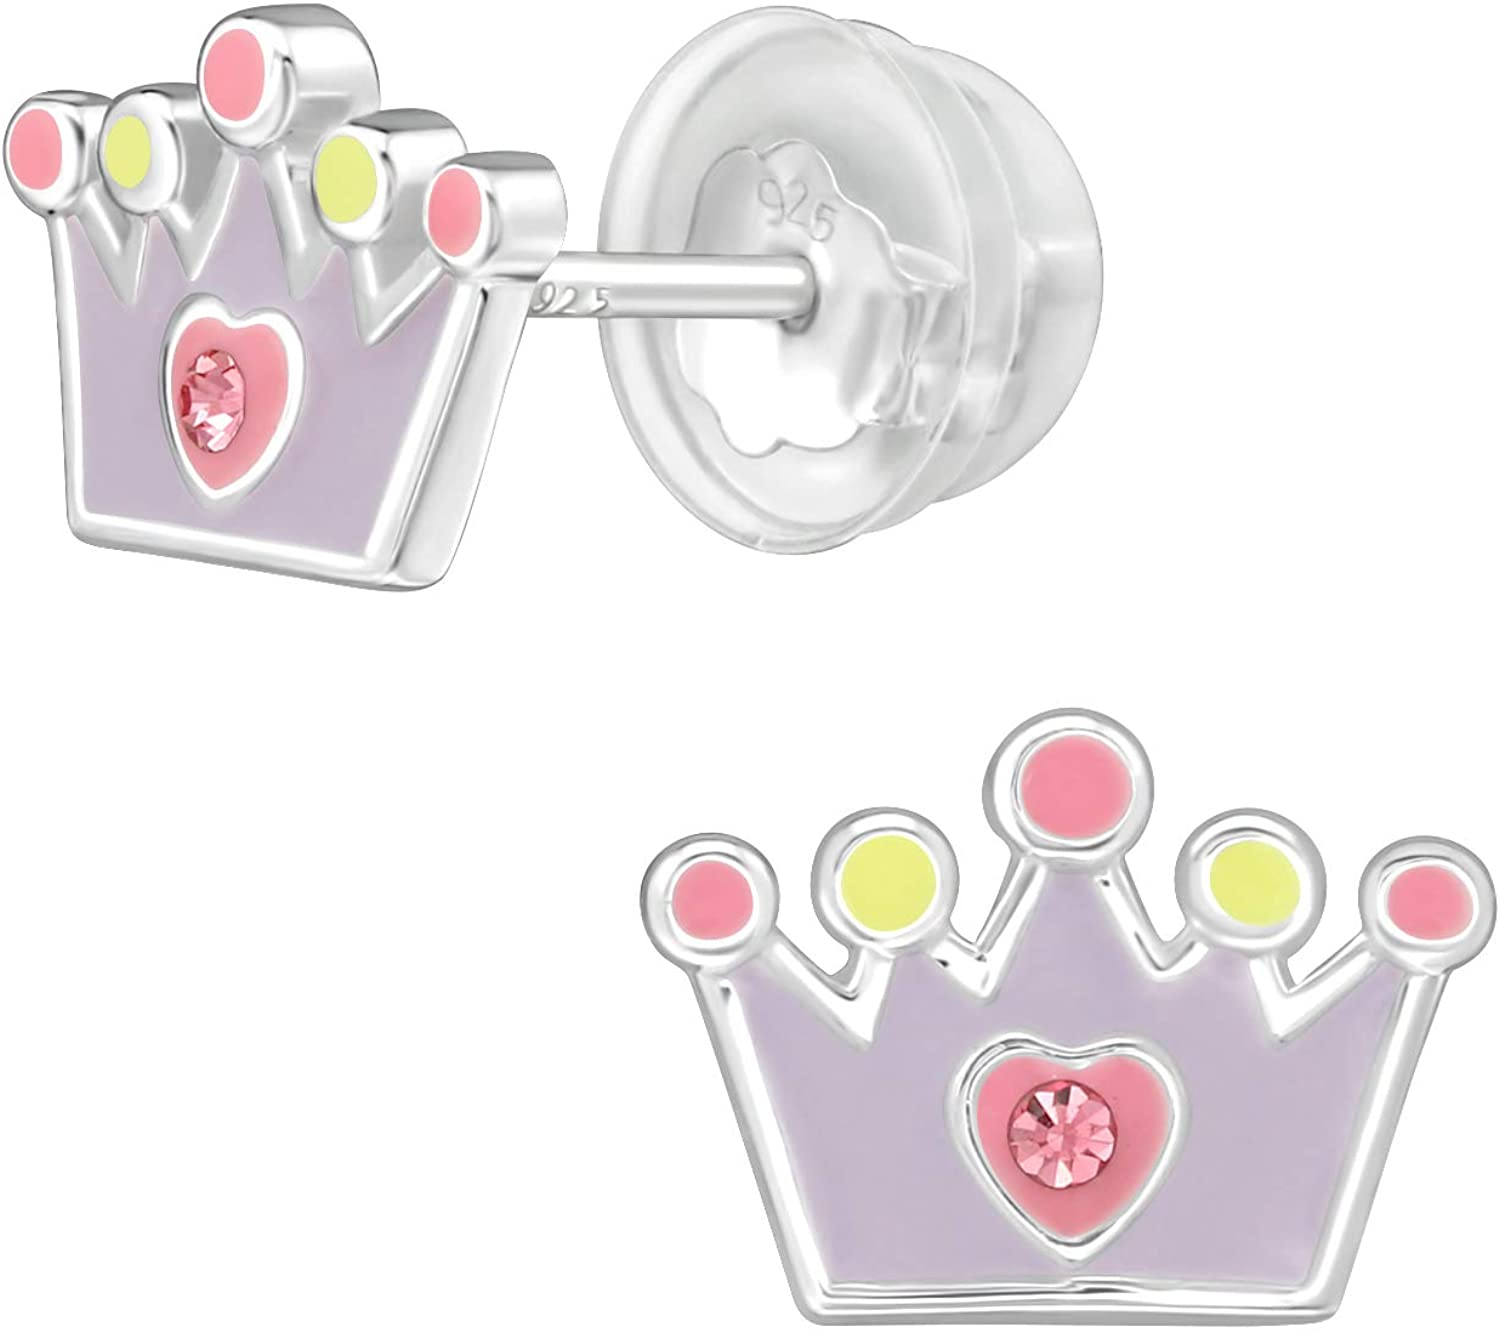 AUBE JEWELRY Hypoallergenic 925 Sterling Silver Princess Crown Stud Earrings Adorned with Crystal with Silicone Coated Push Backs for Girls and Women